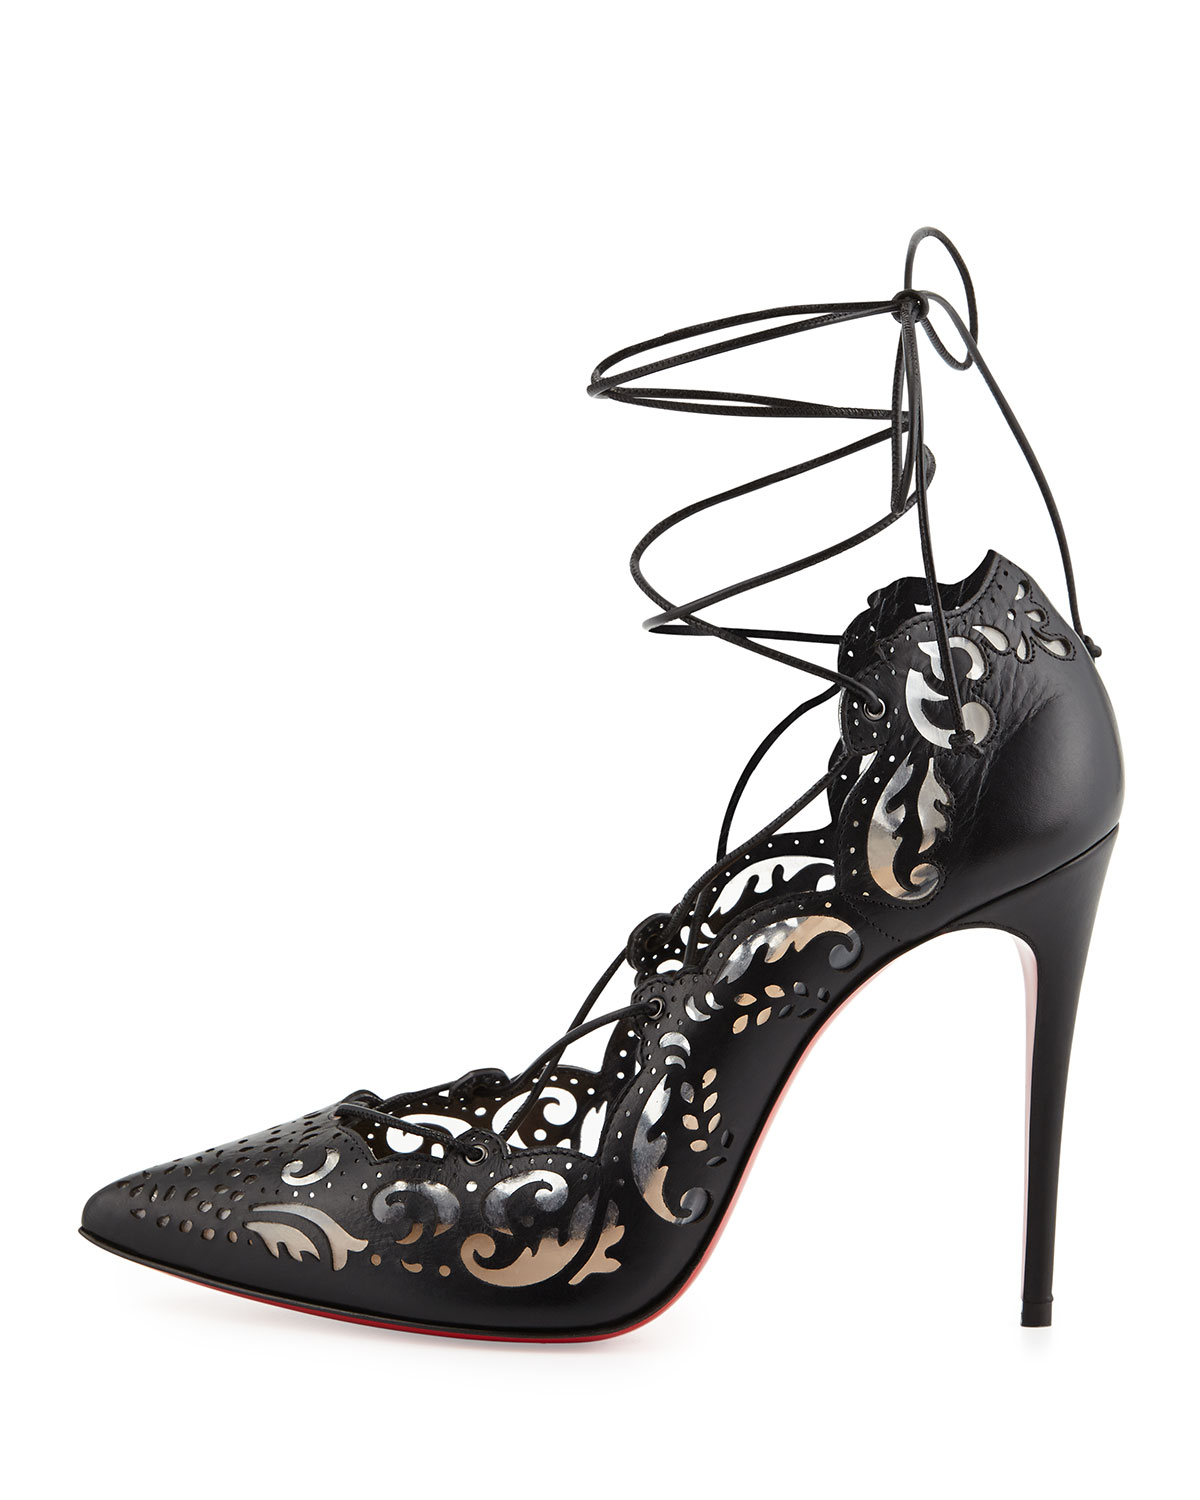 2d461942169f greece shoes pigalle christian louboutin abace 5cf8b  clearance lyst  christian louboutin impera laceup lasercut red sole pump 271c4 31bad